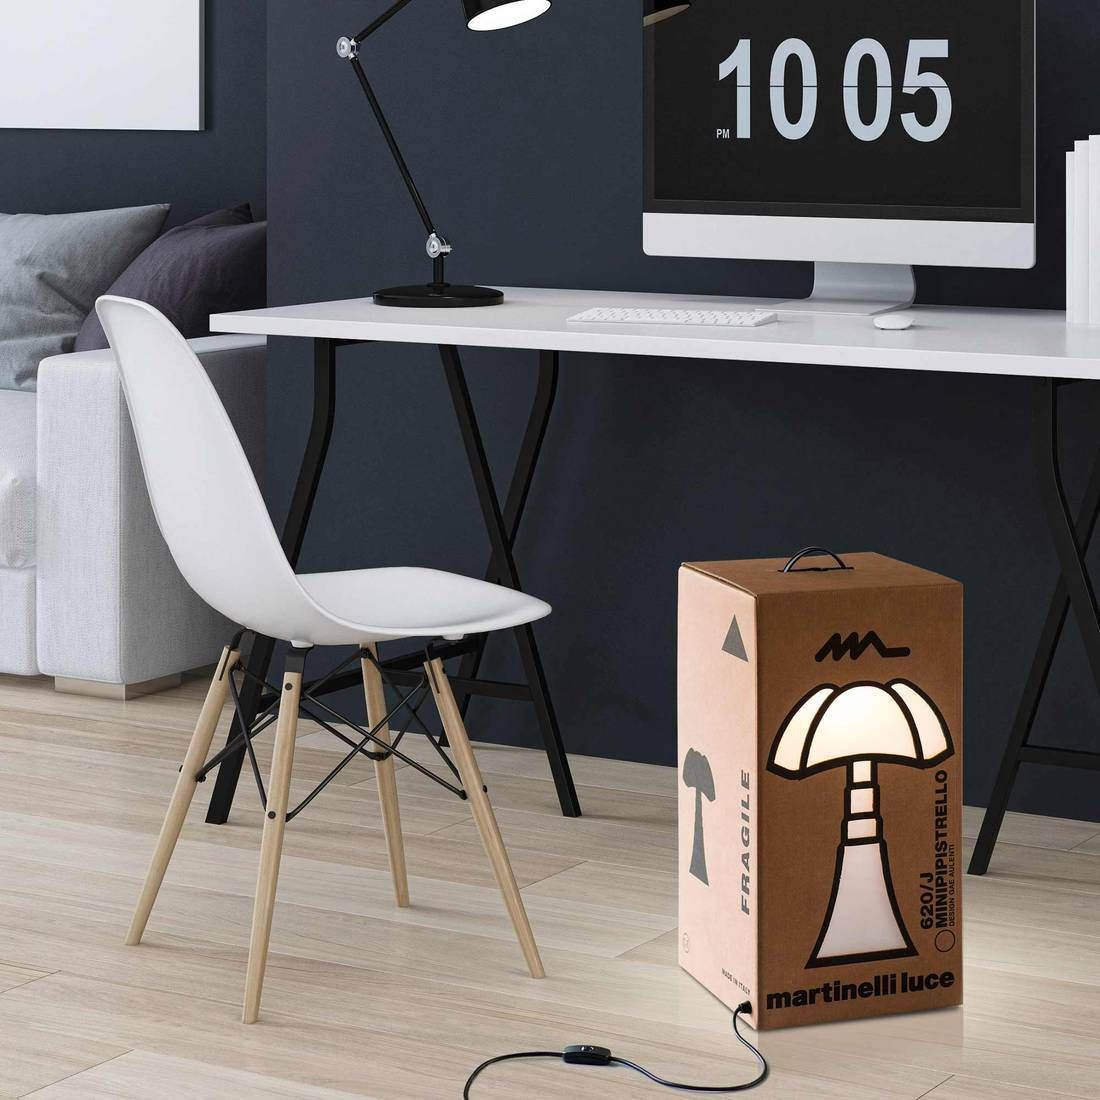 Lampe A Poser Carton Mini Pipistrello H62cm Mini Pipistrello